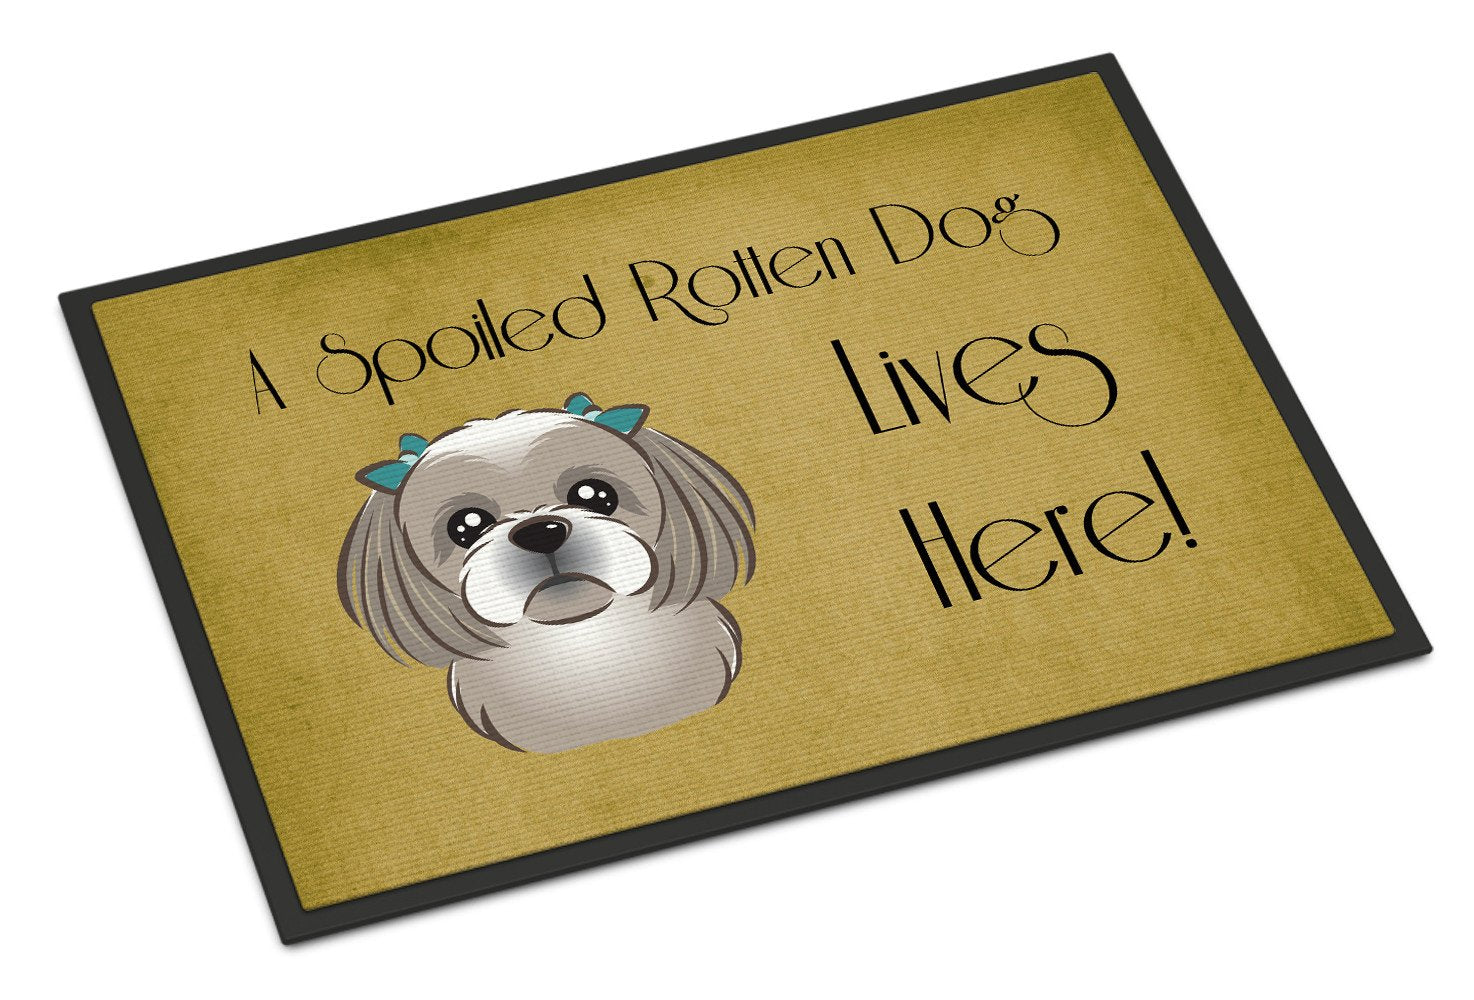 Gray Silver Shih Tzu Spoiled Dog Lives Here Indoor or Outdoor Mat 18x27 BB1498MAT - the-store.com